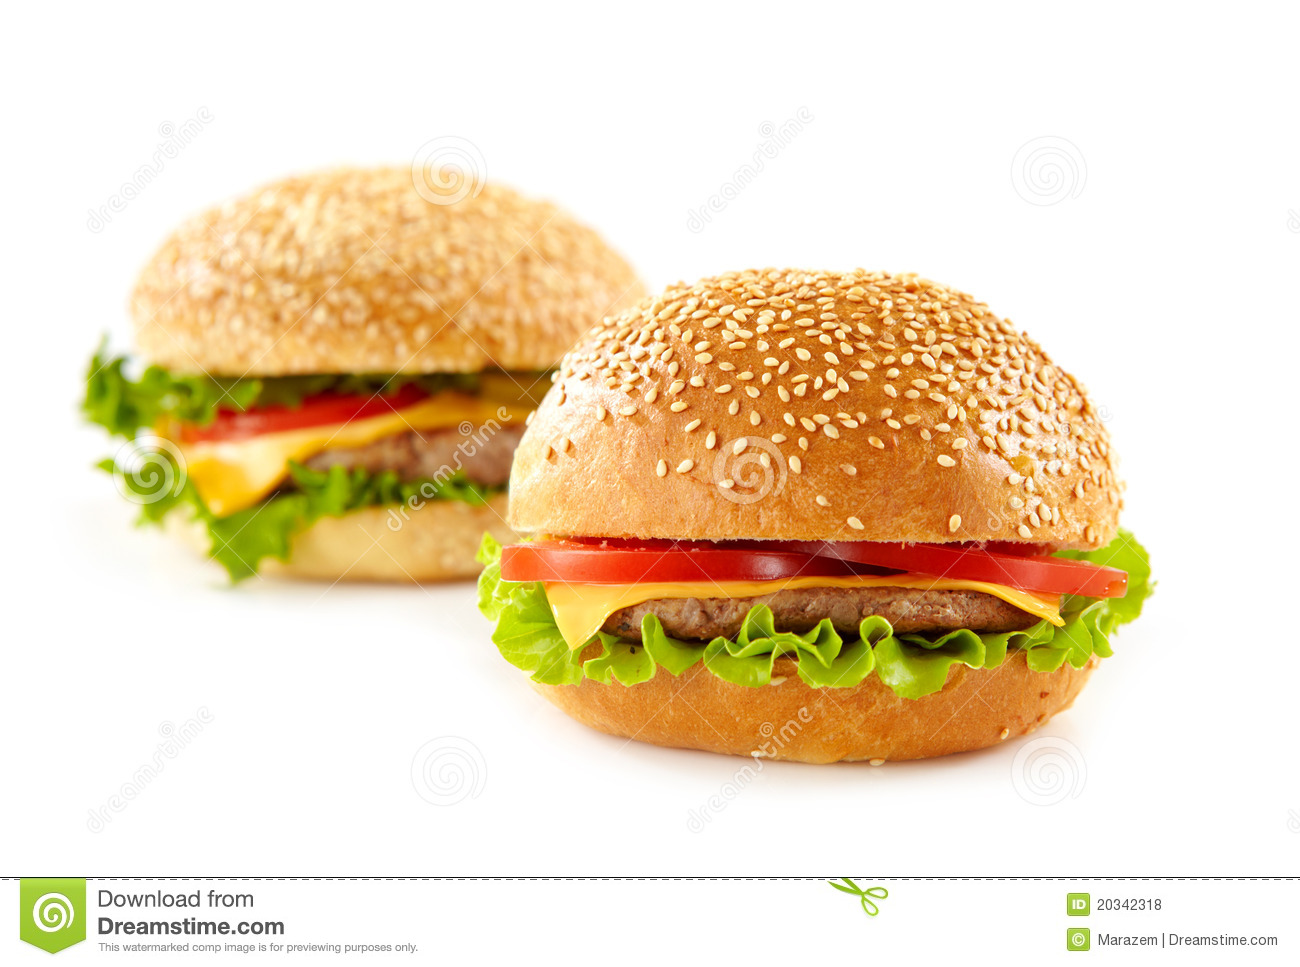 Cheeseburgers Royalty Free Stock Photos - Image: 20342318